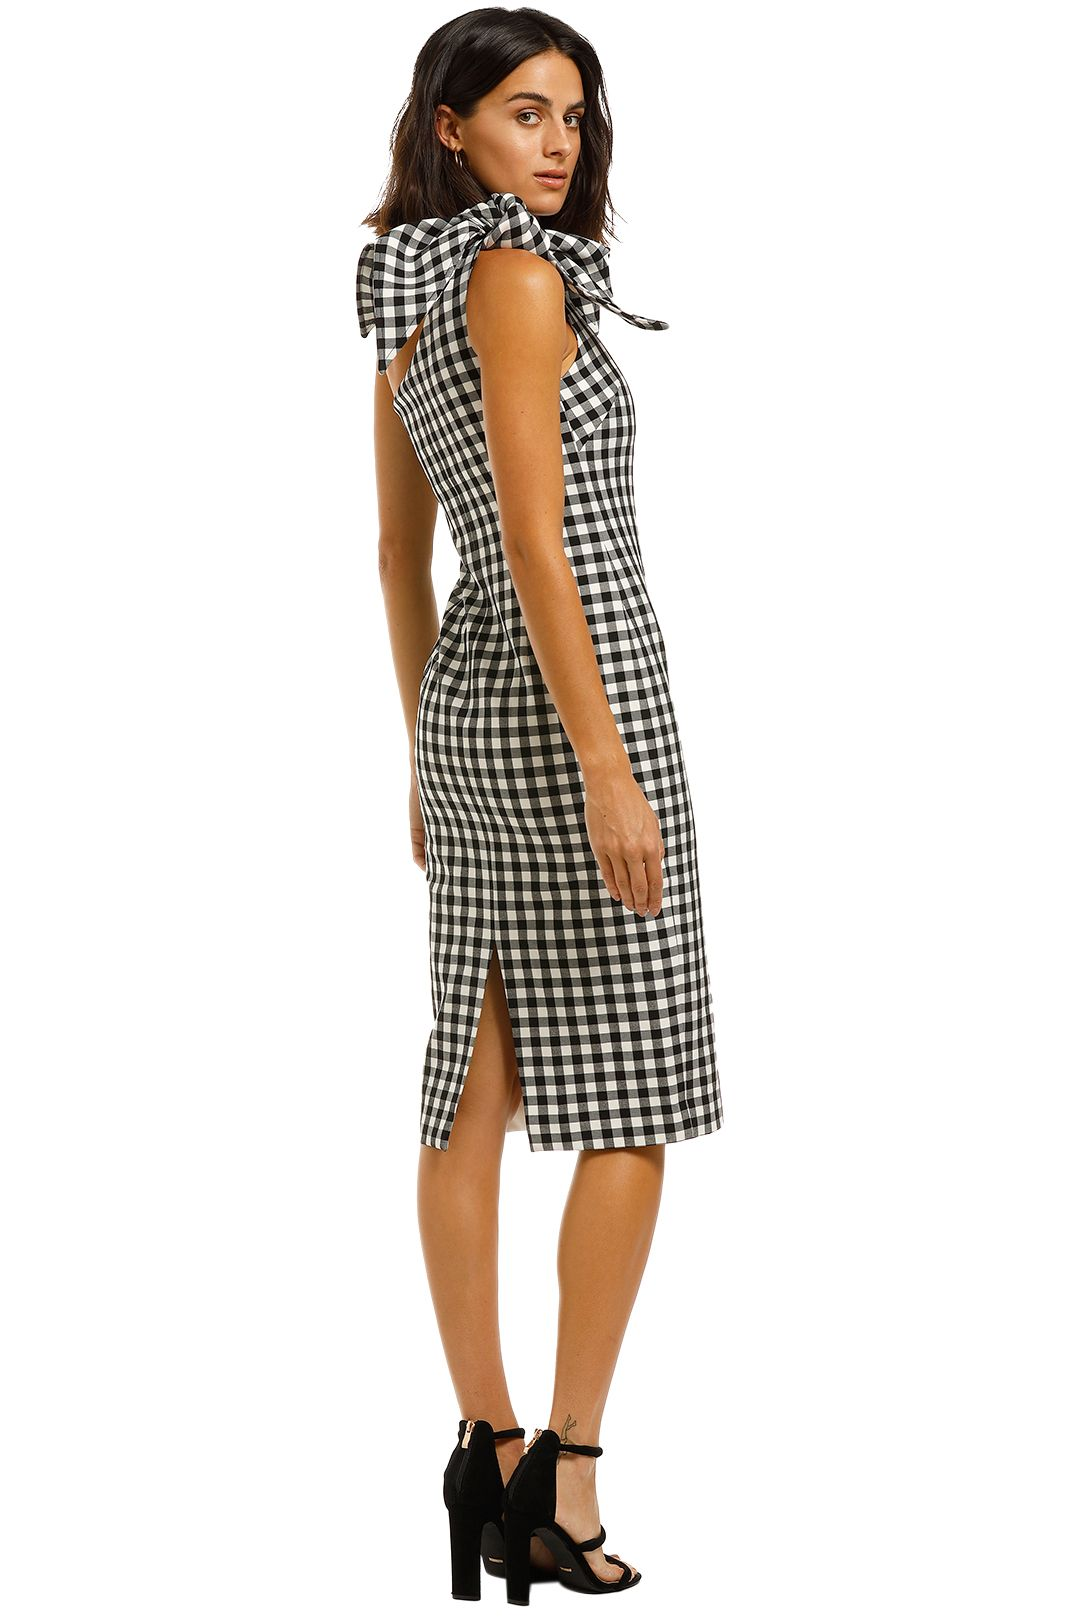 By-Johnny-Georgie-Gingham-Tie-Midi-Black-and-White-Back